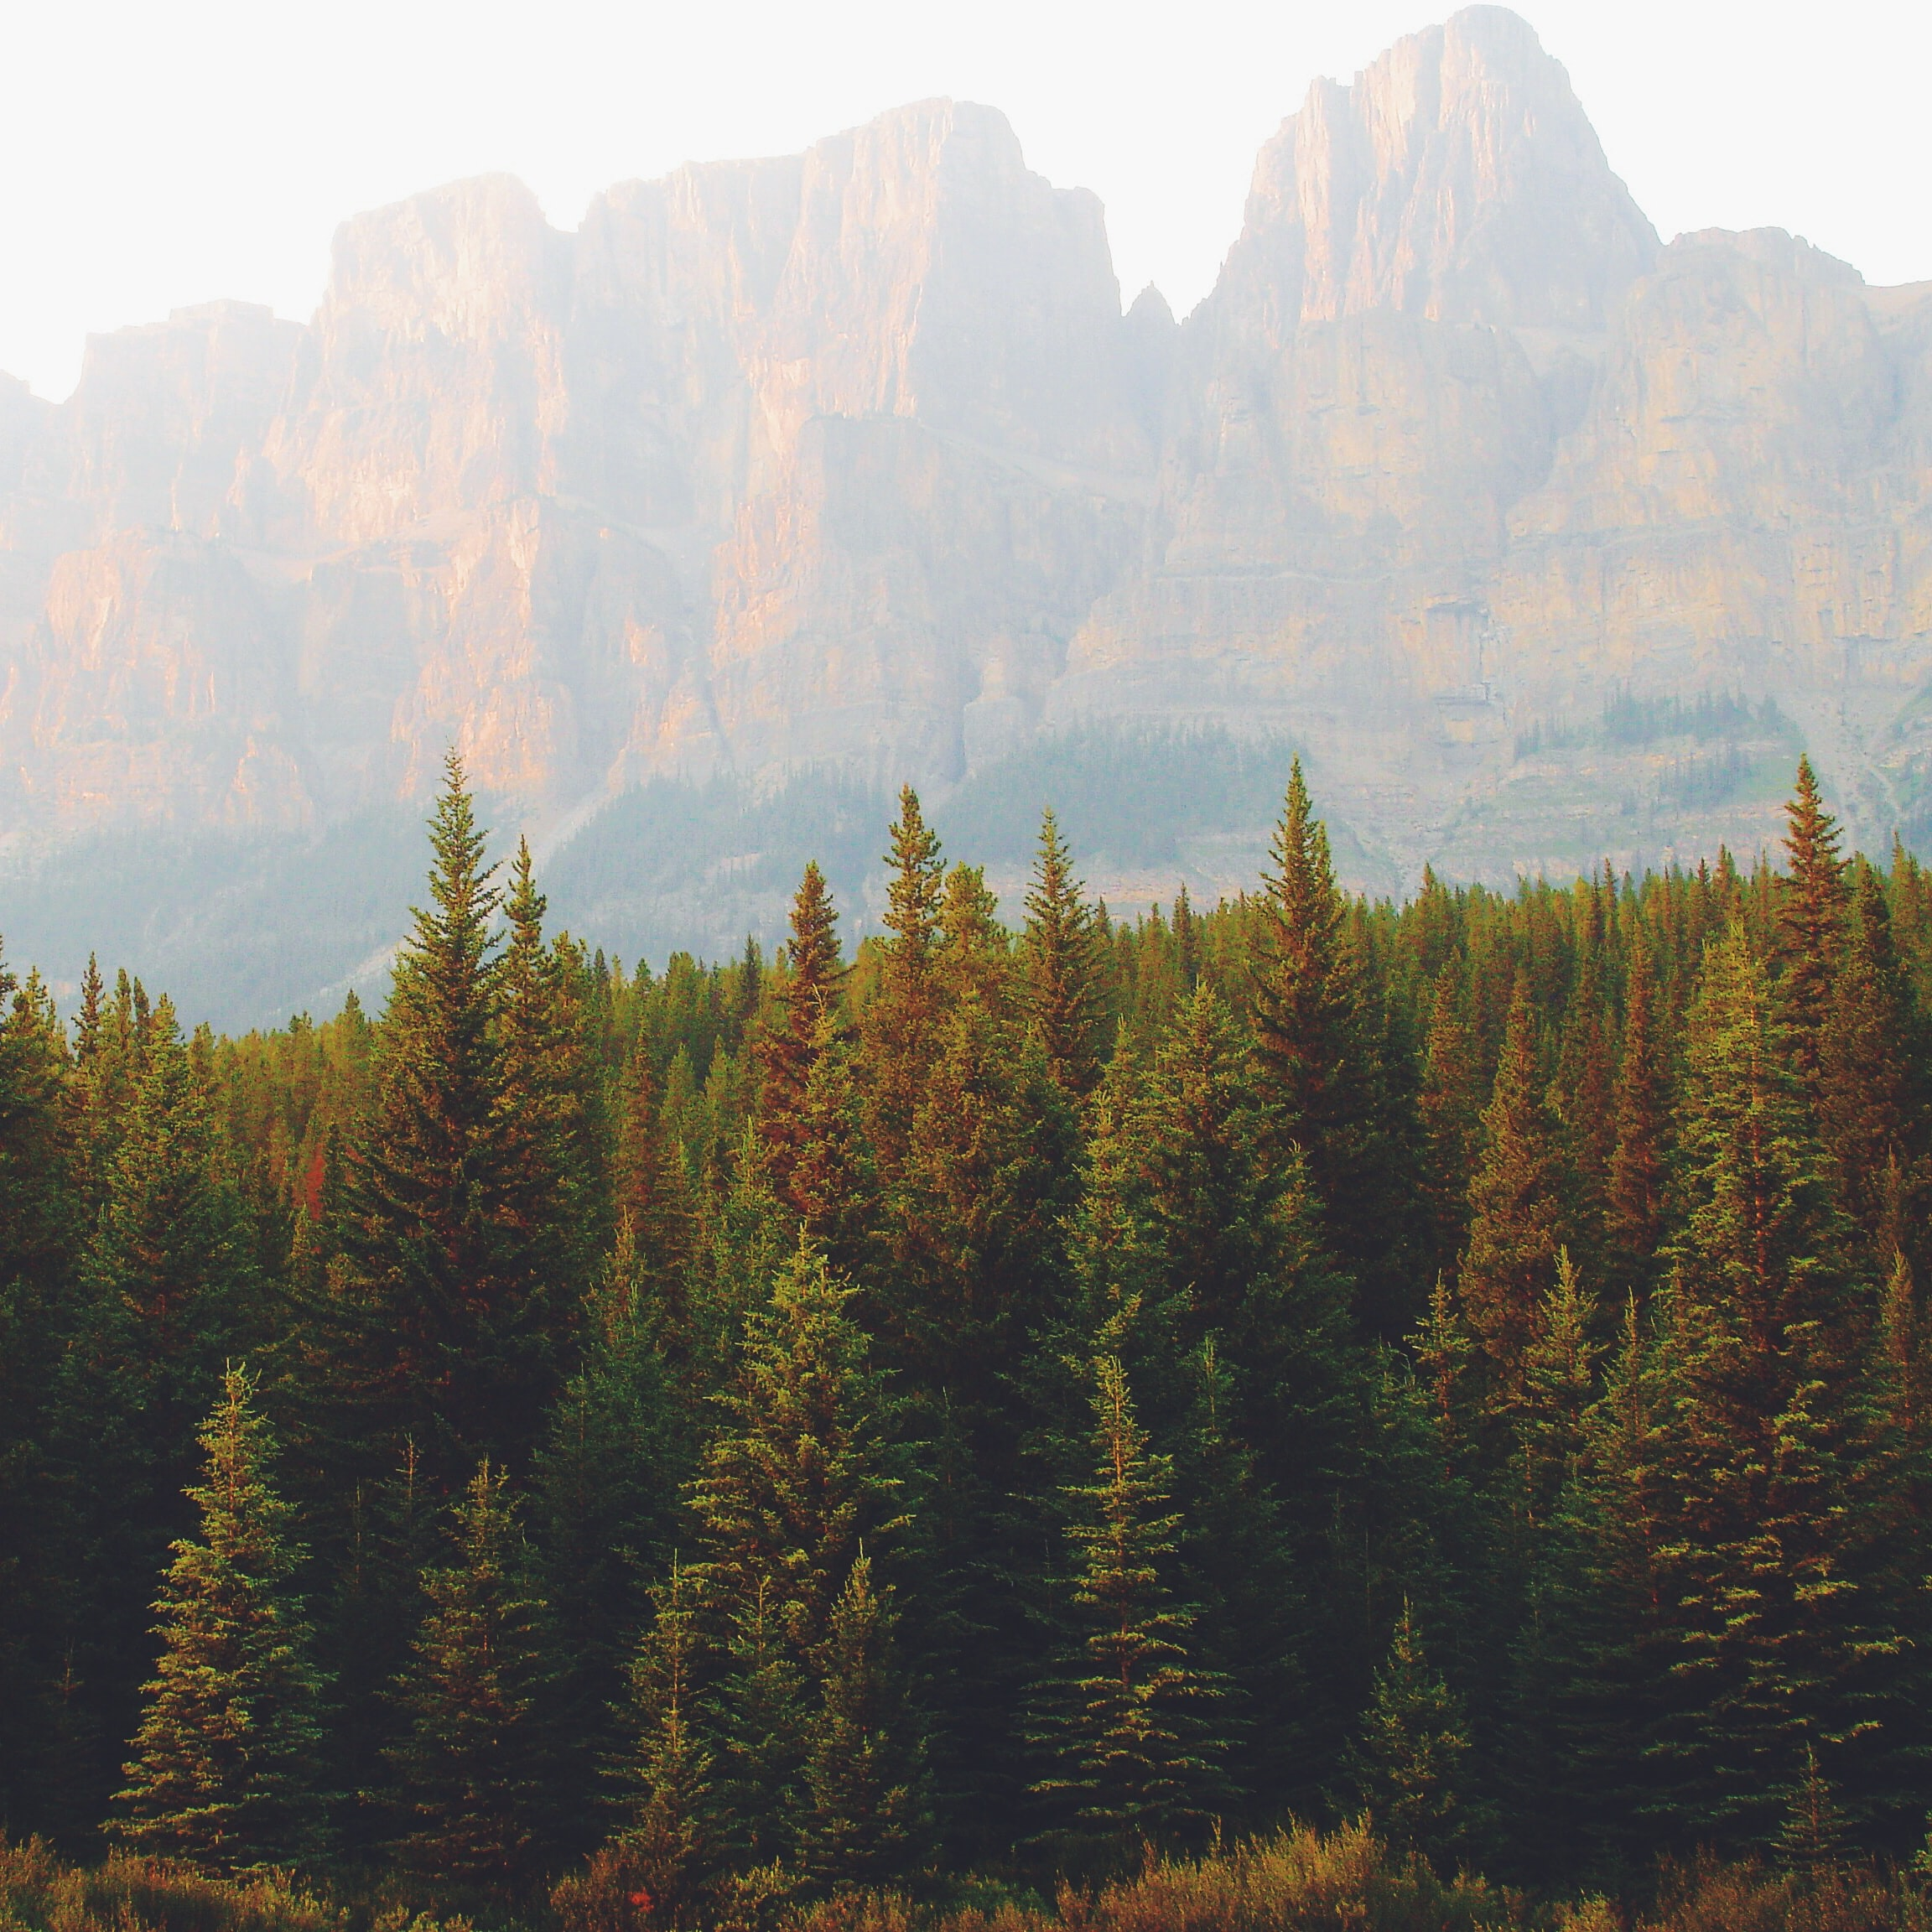 Granite mountains behind a haze over evergreen woods